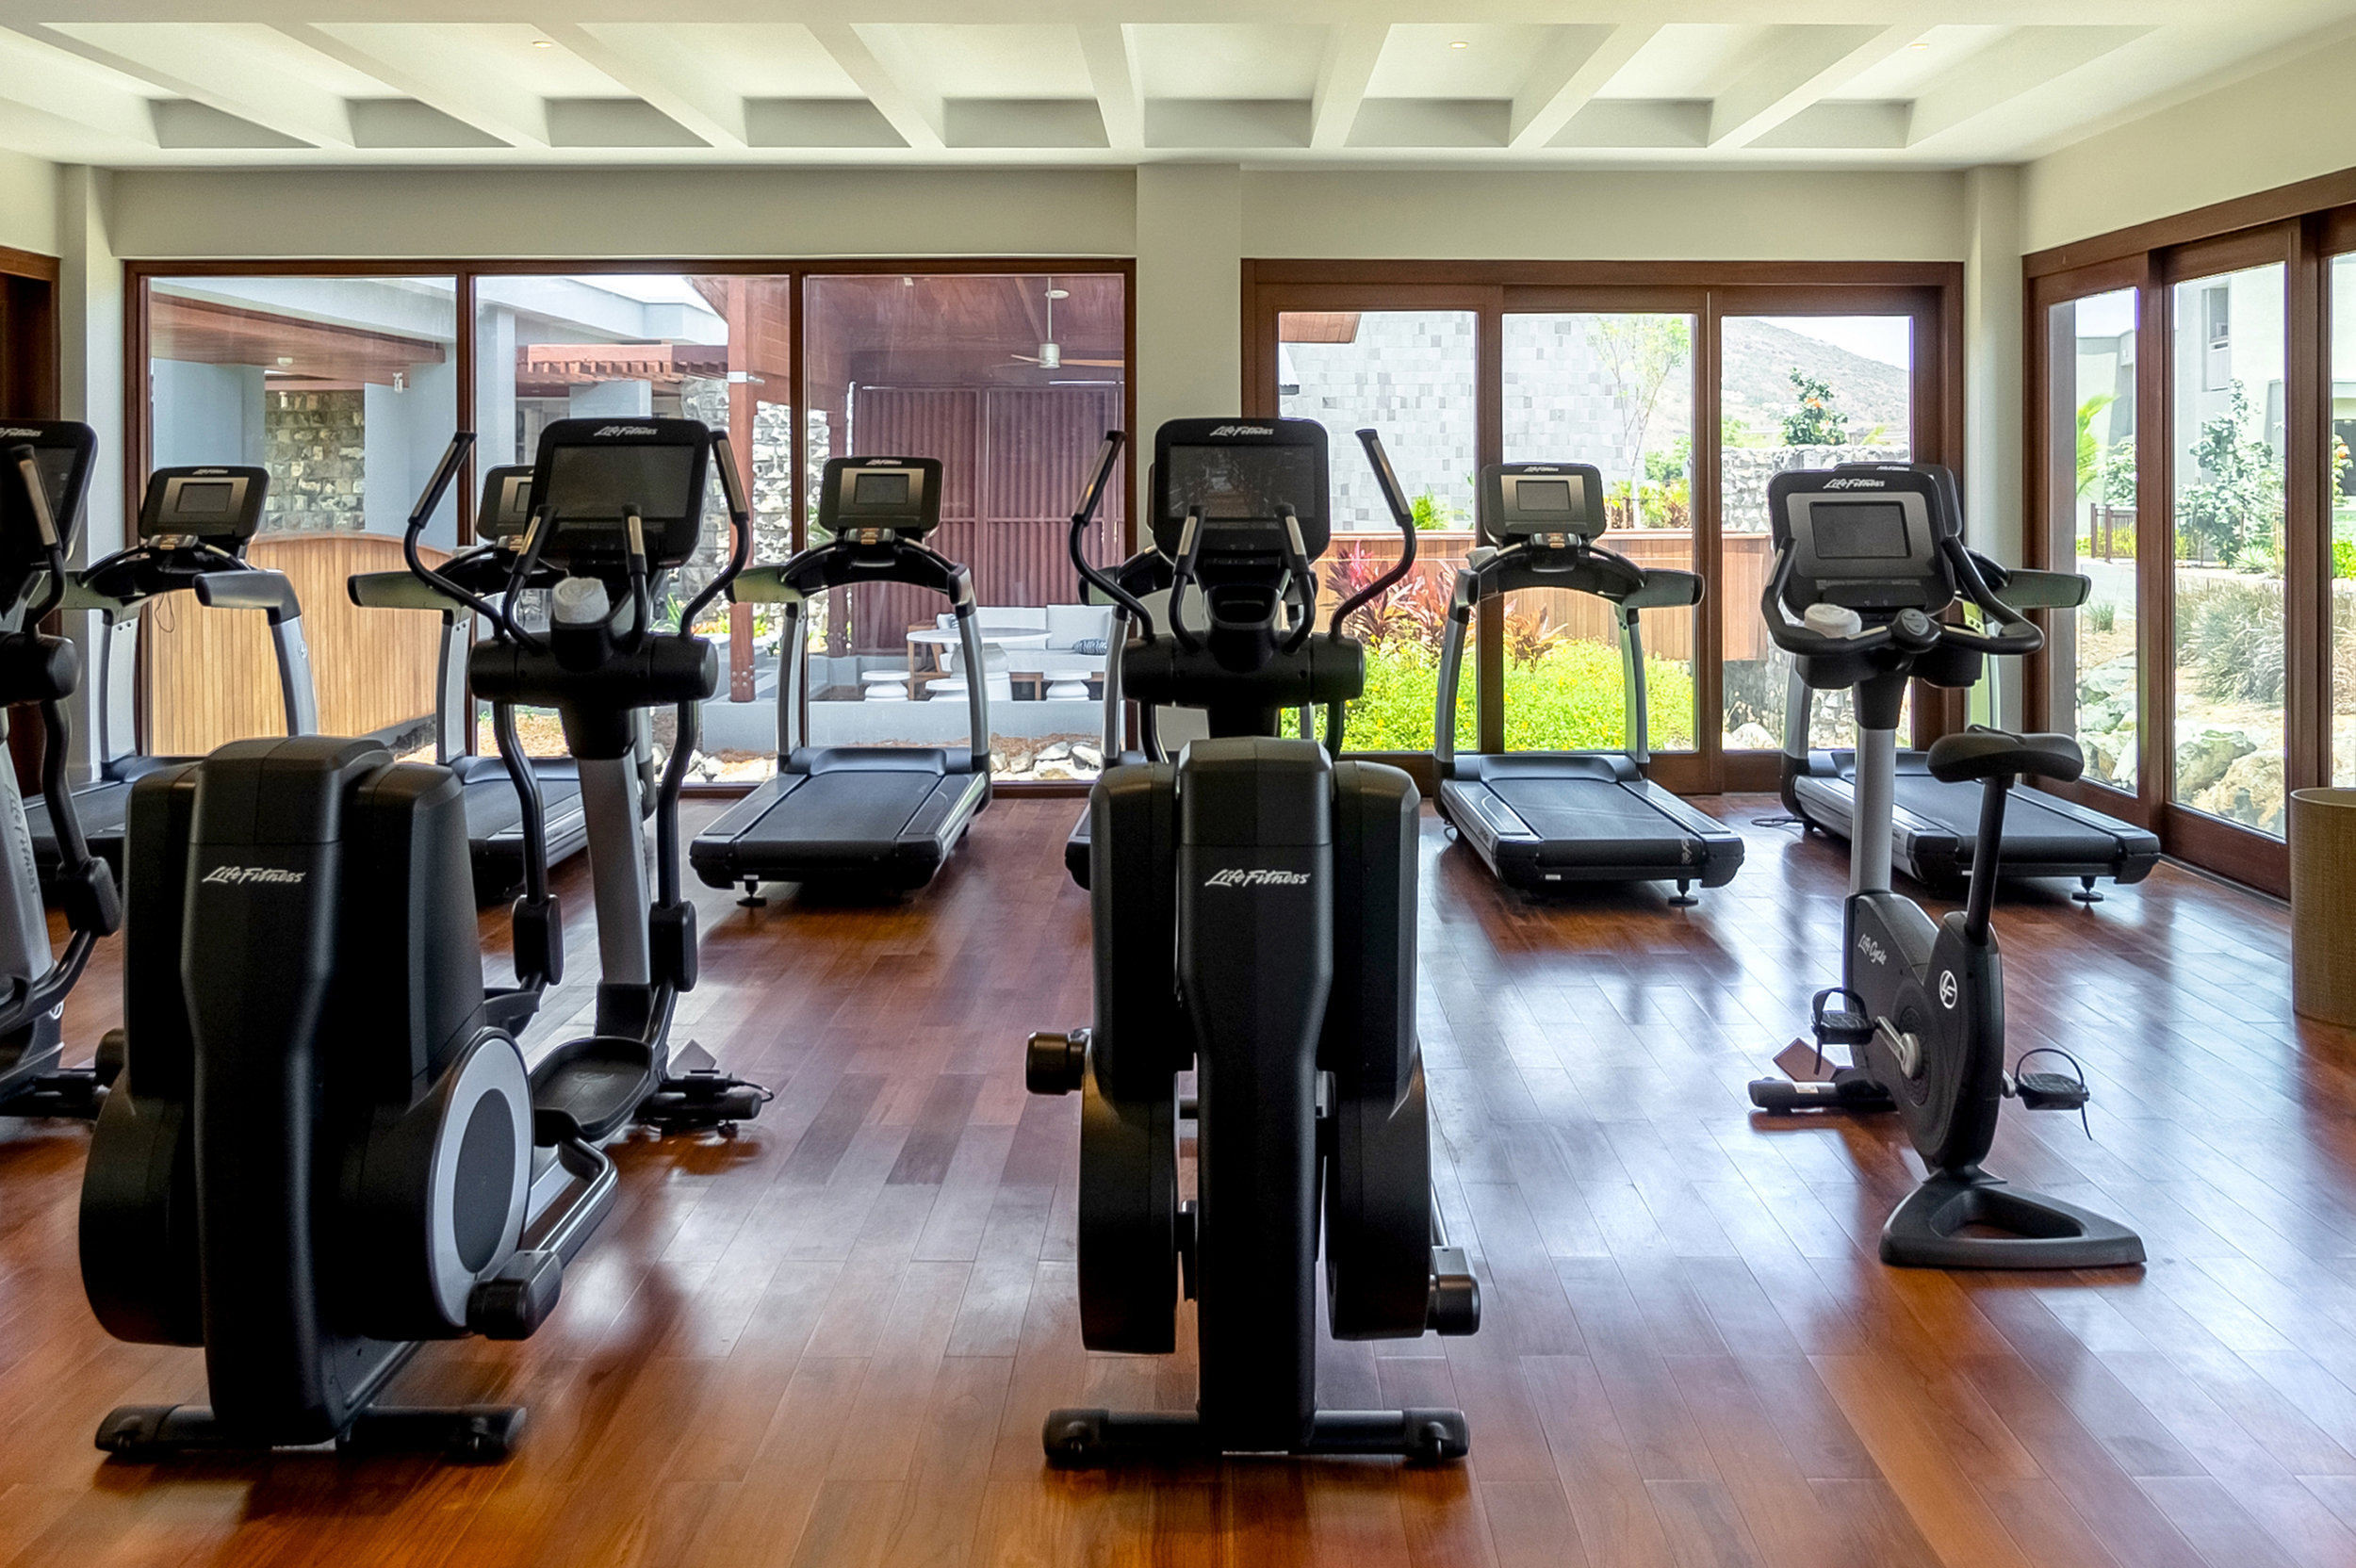 Park-Hyatt-St-Kitts-Fitness-Center-A.JPG